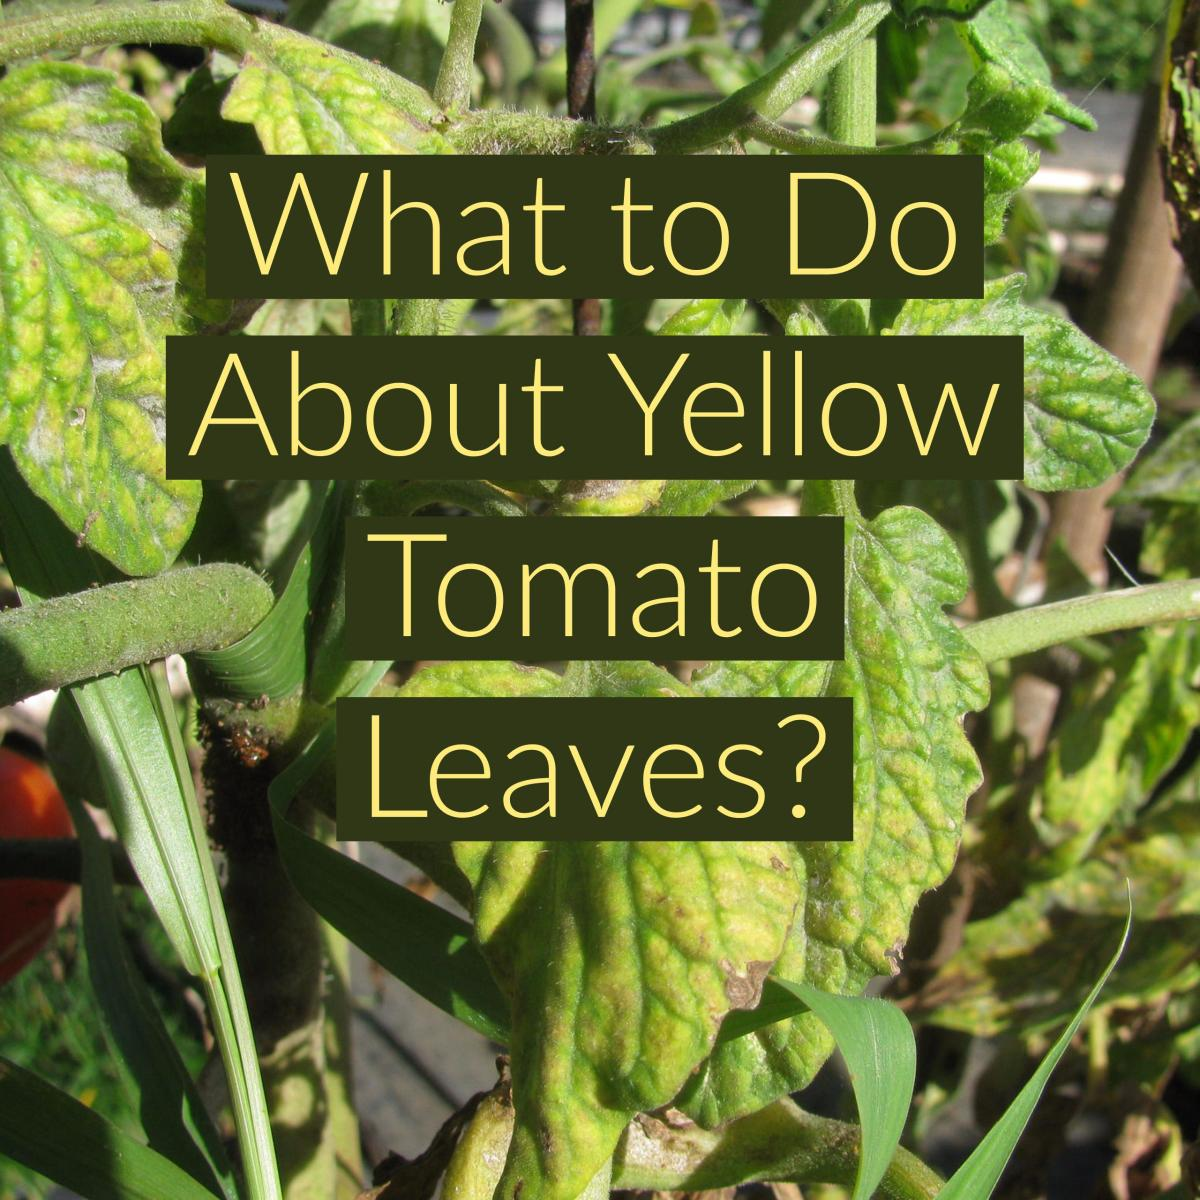 Genial Turning Yellow Tomato Plant Leaves Curling Purple Yellow Leaves On Tomato Plants Dengarden Tomato Plant Leaves Curling Causes Cures houzz 01 Tomato Plant Leaves Curling